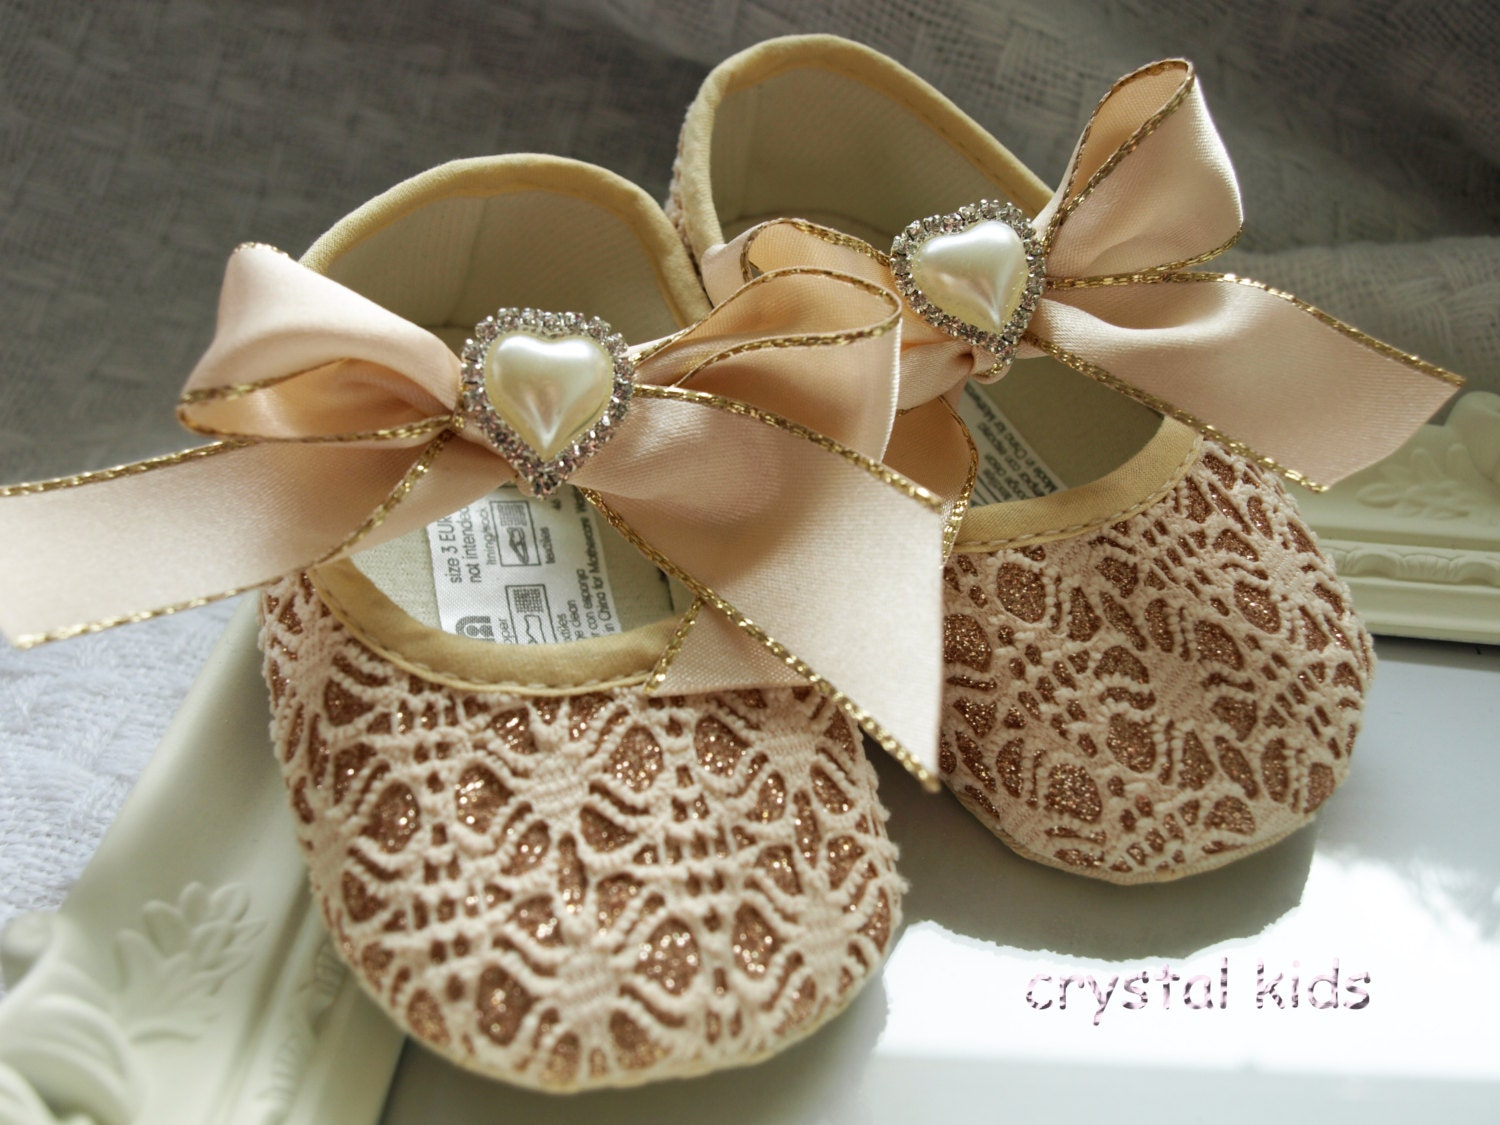 Unique Baby Girls Fairytale Princess Reborn Christening Wedding Gold Sparkly Crystal Pram Shoes 06 6121218 Months